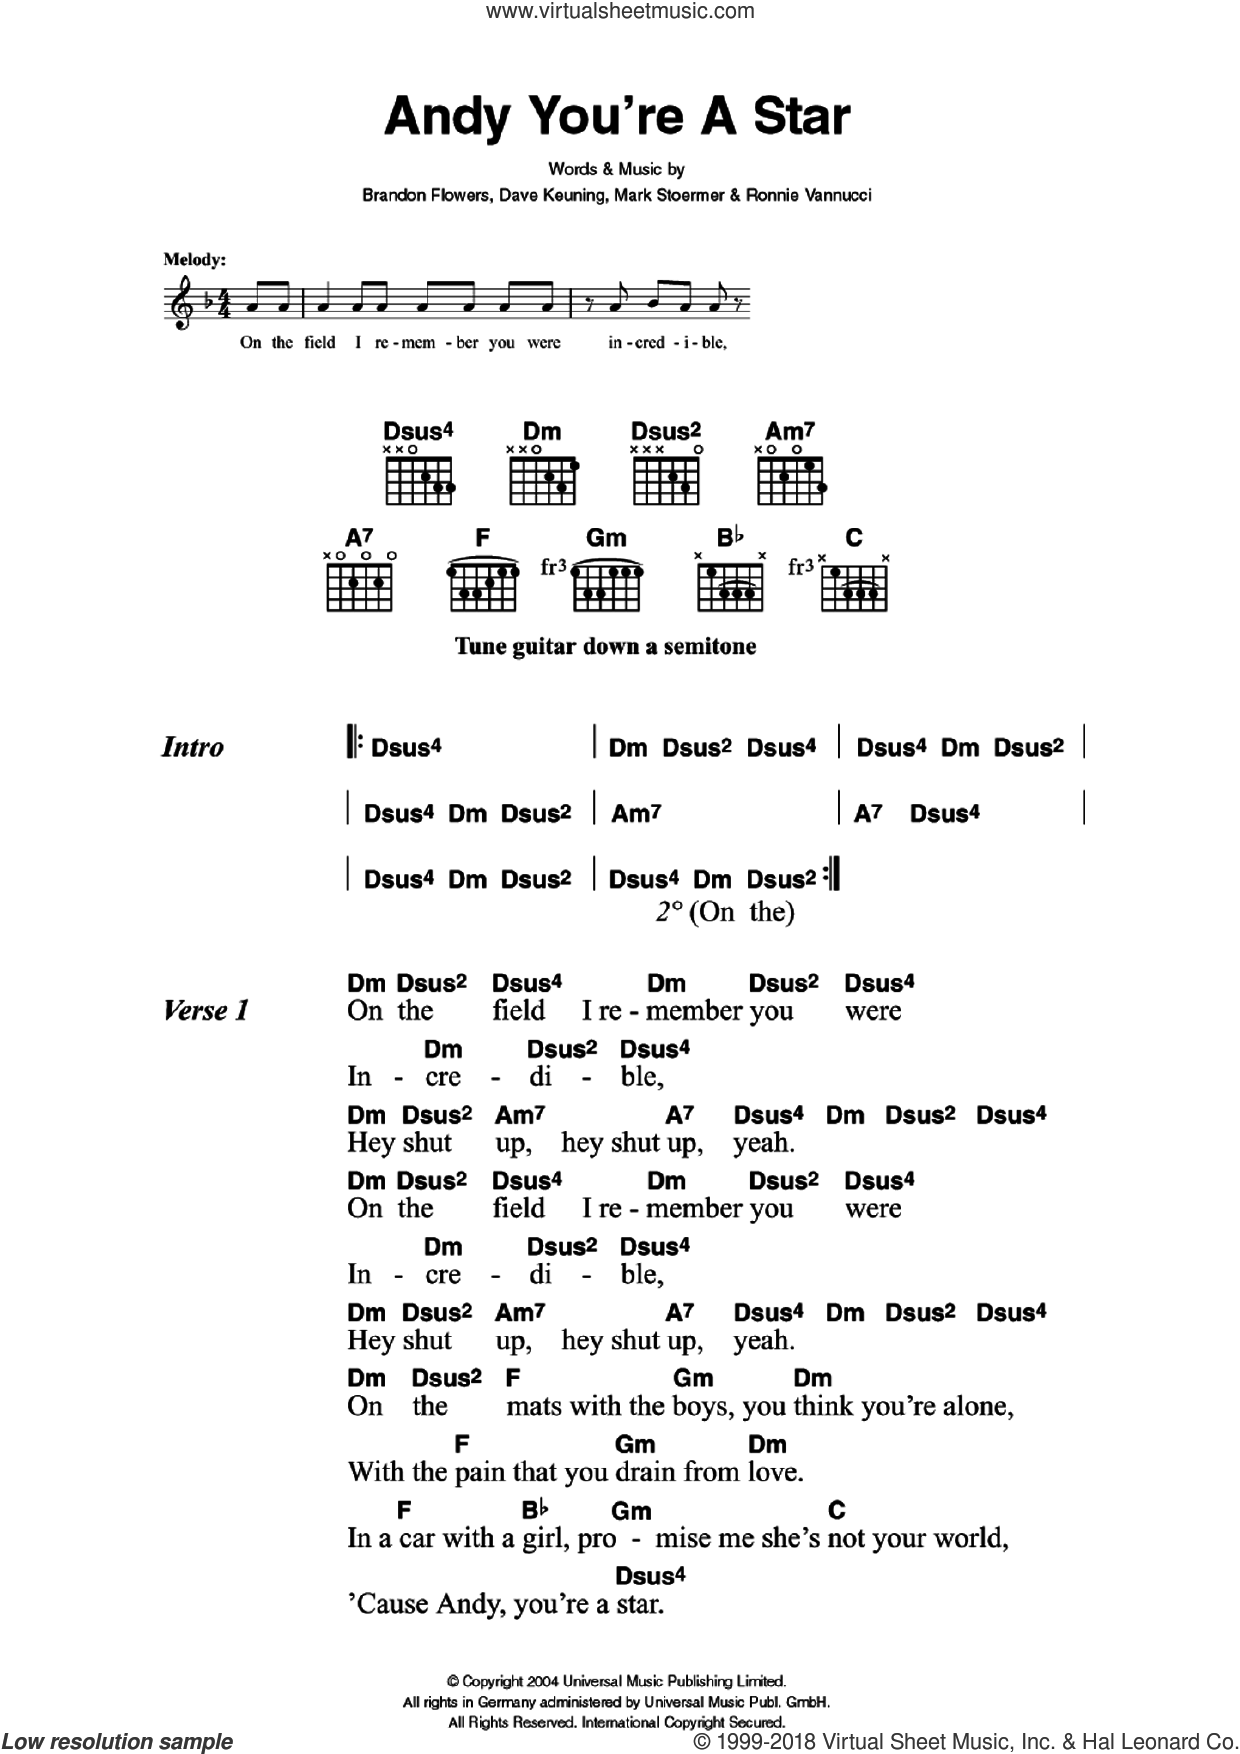 Andy You're A Star sheet music for guitar (chords) by Brandon Flowers